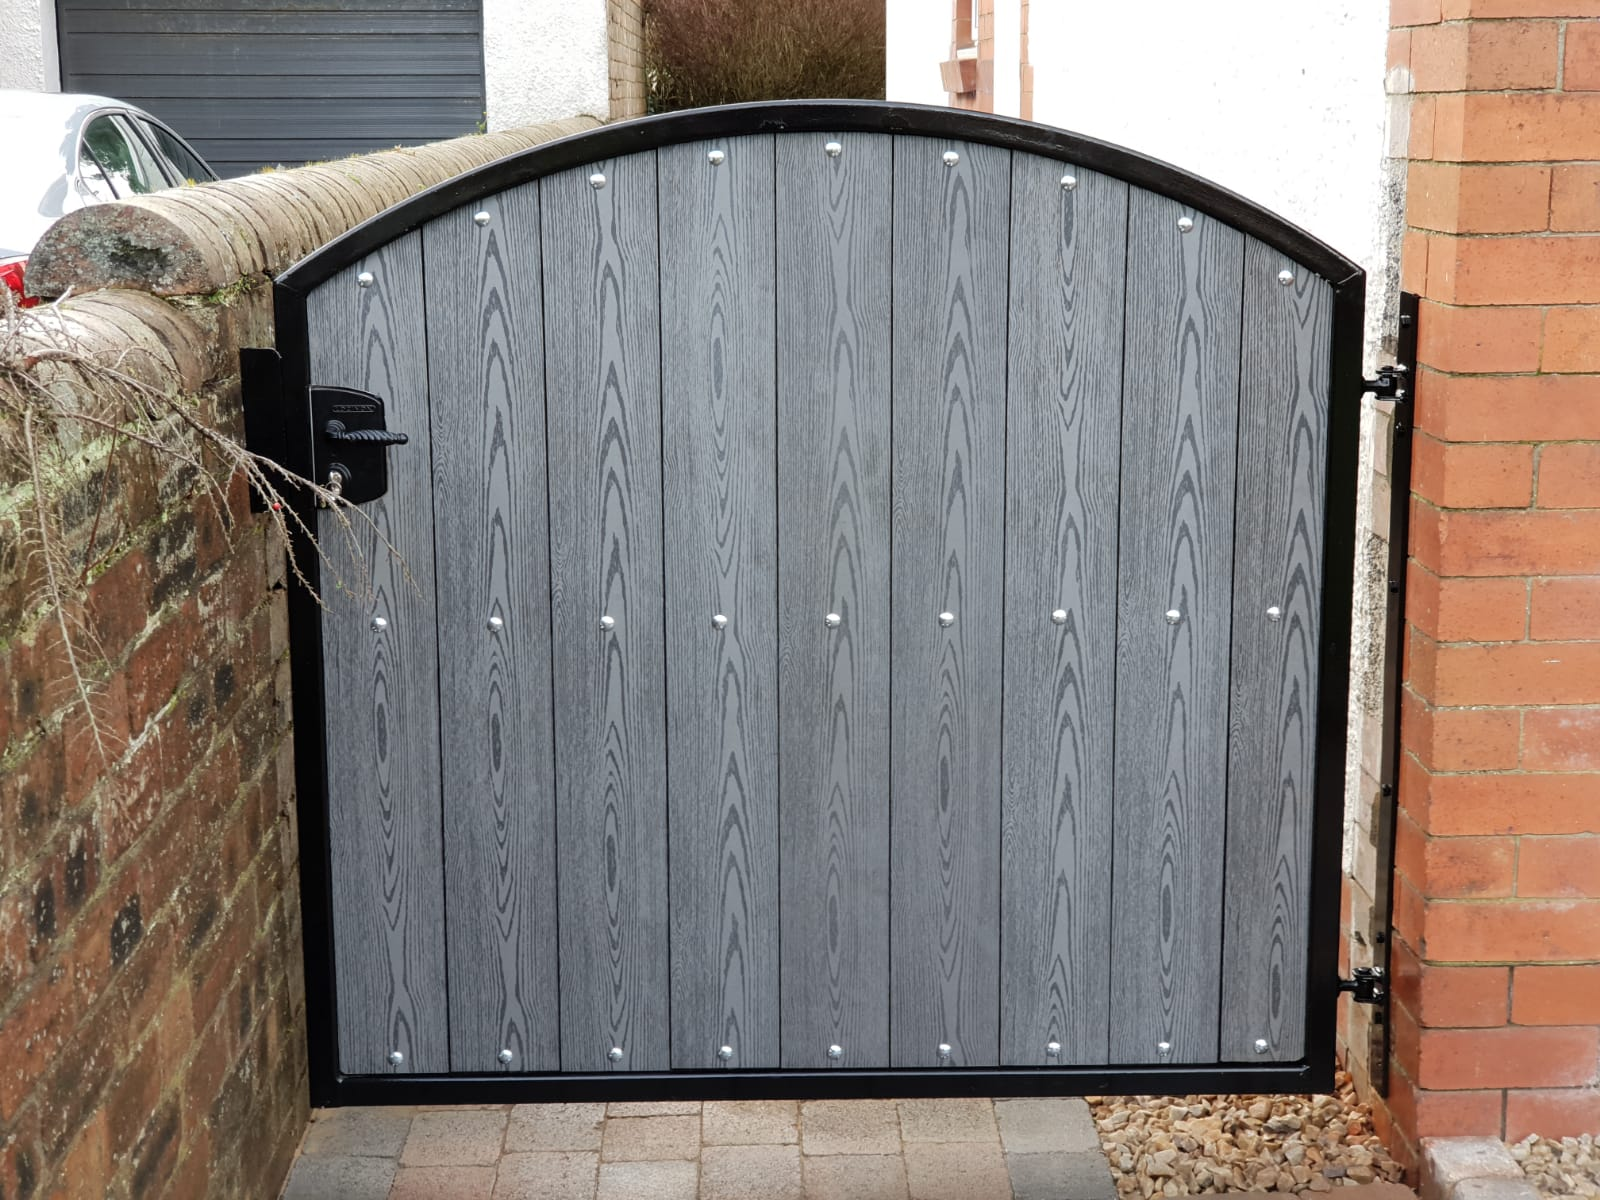 Composite garden gate by Dain Art Iron in Arshire